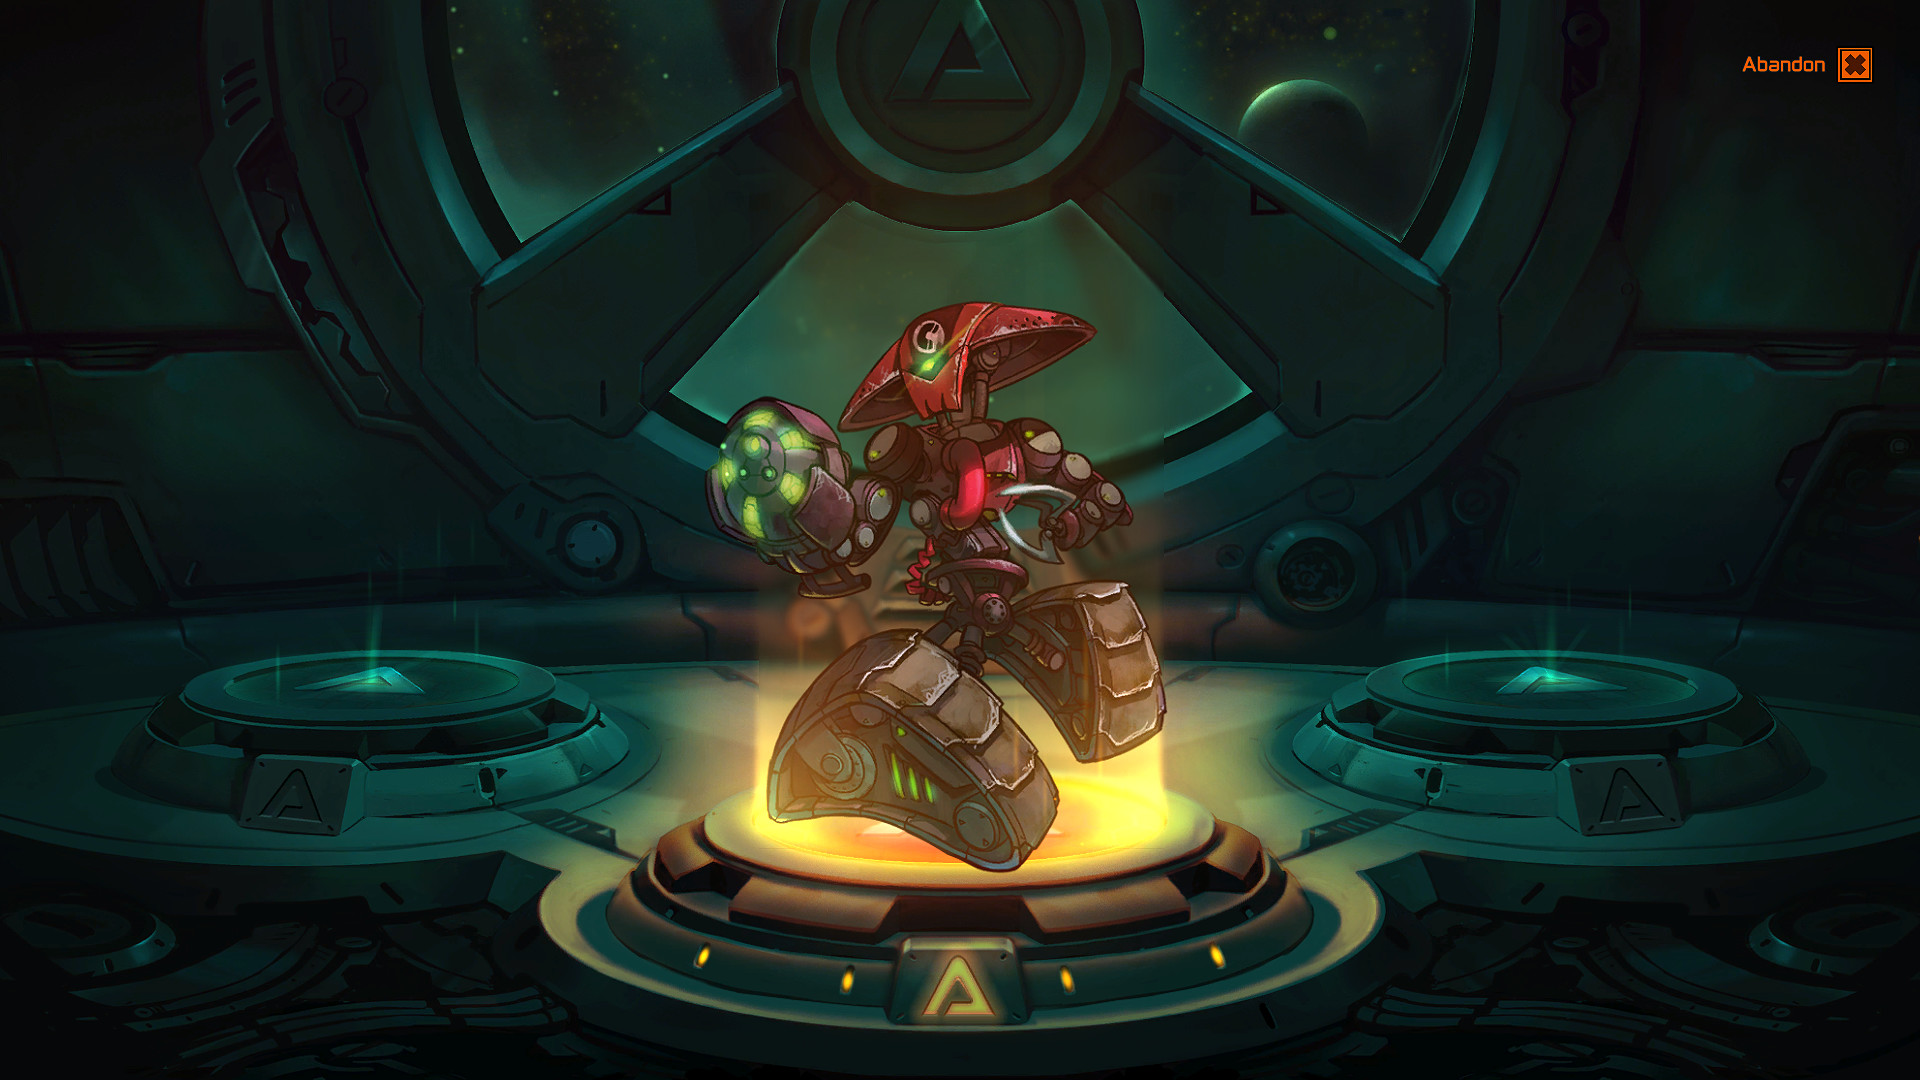 Sentry X-58 - Awesomenauts Character screenshot